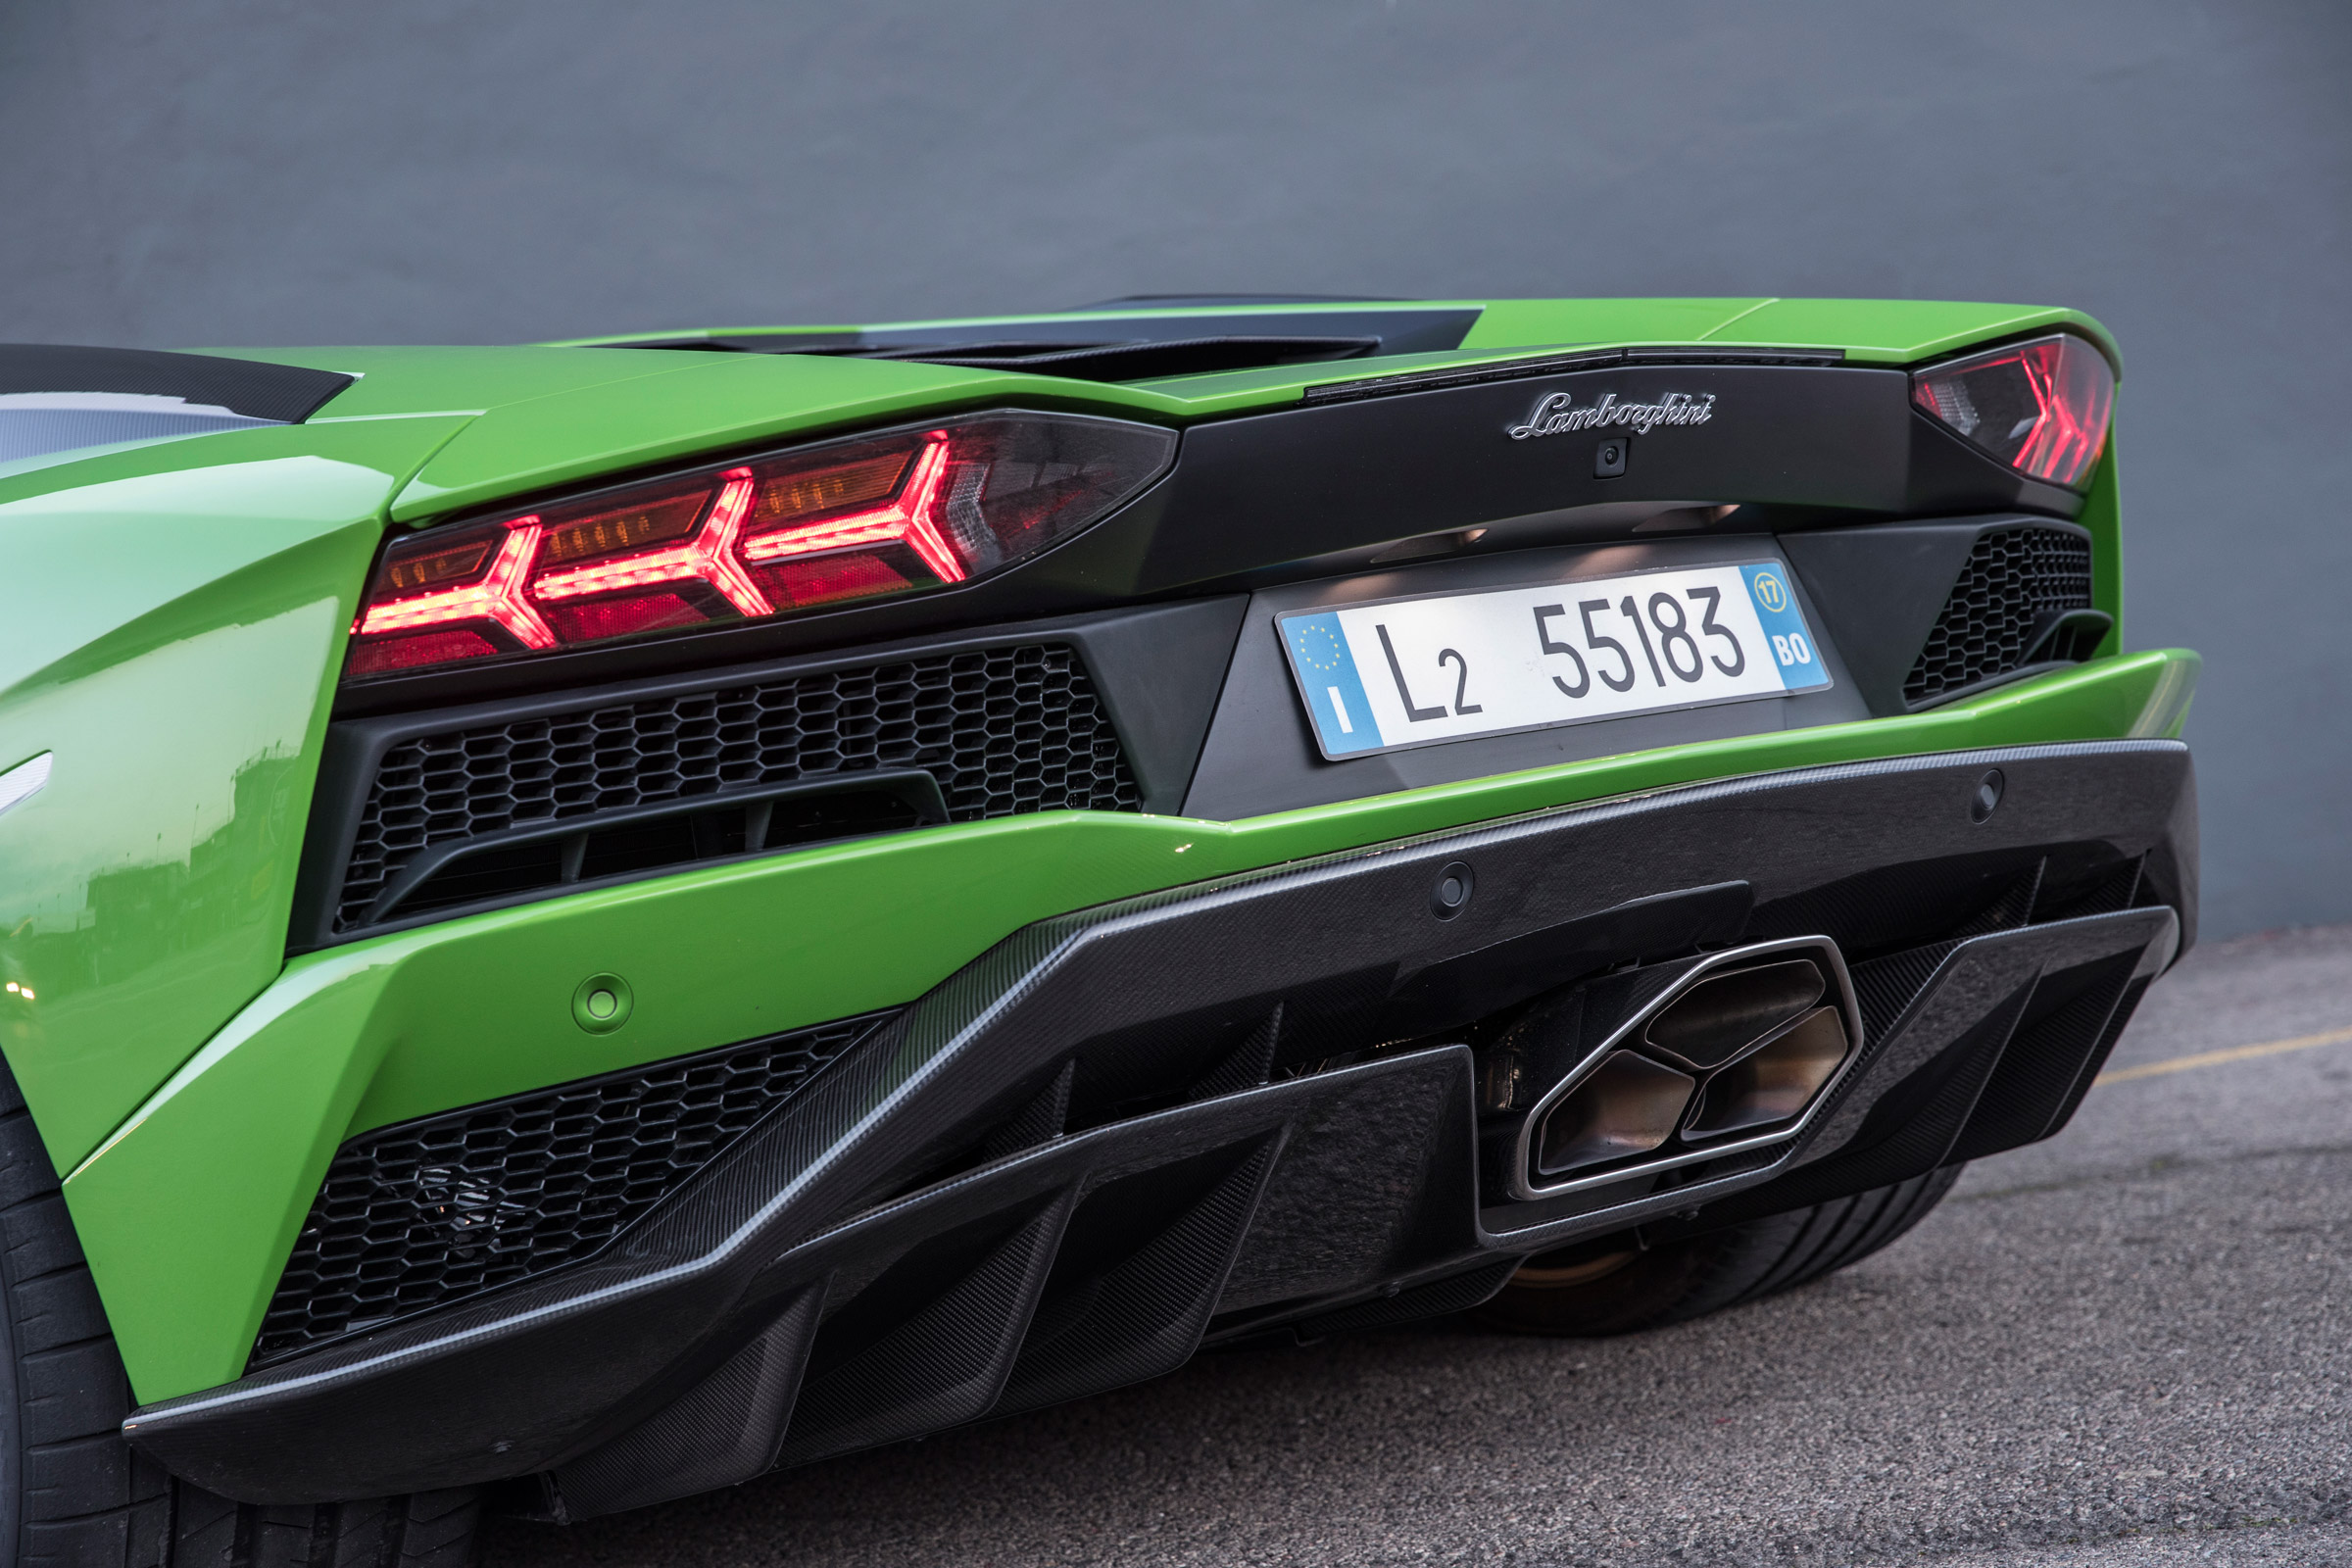 2017 Lamborghini Aventador S Exterior View Rear Bumper And Taillight (Photo 6 of 20)